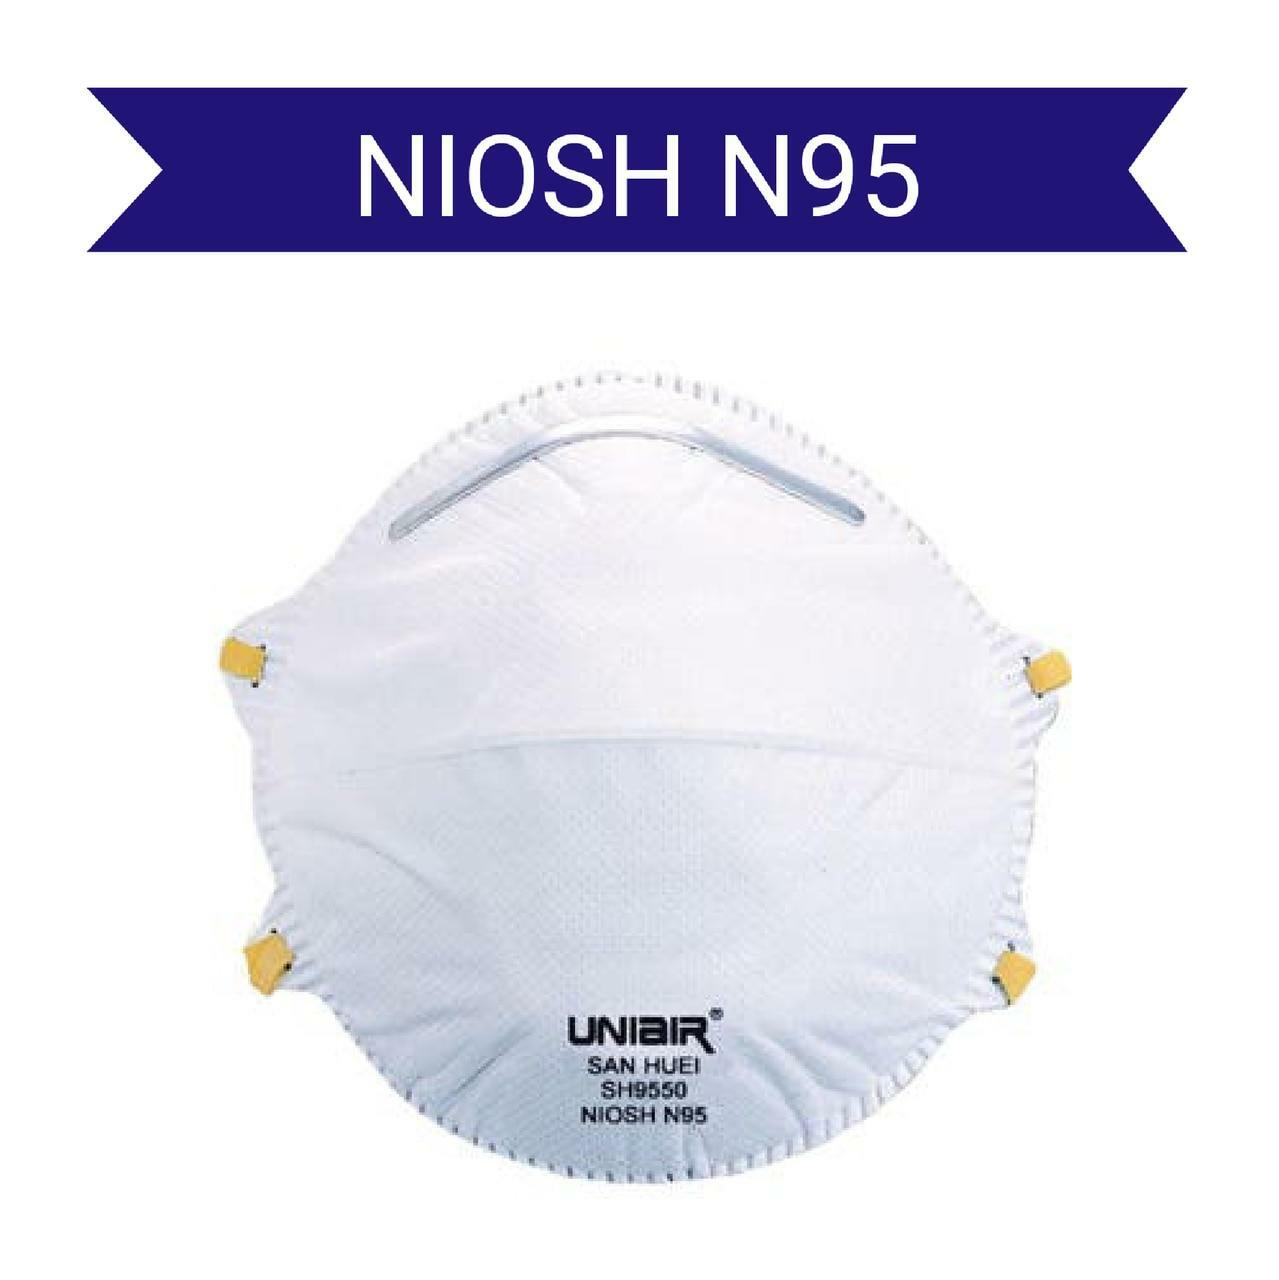 san-huei-uniair-n95-face-mask-niosh-approved-20-pack-93097.1610394898.1280.1280.jpg